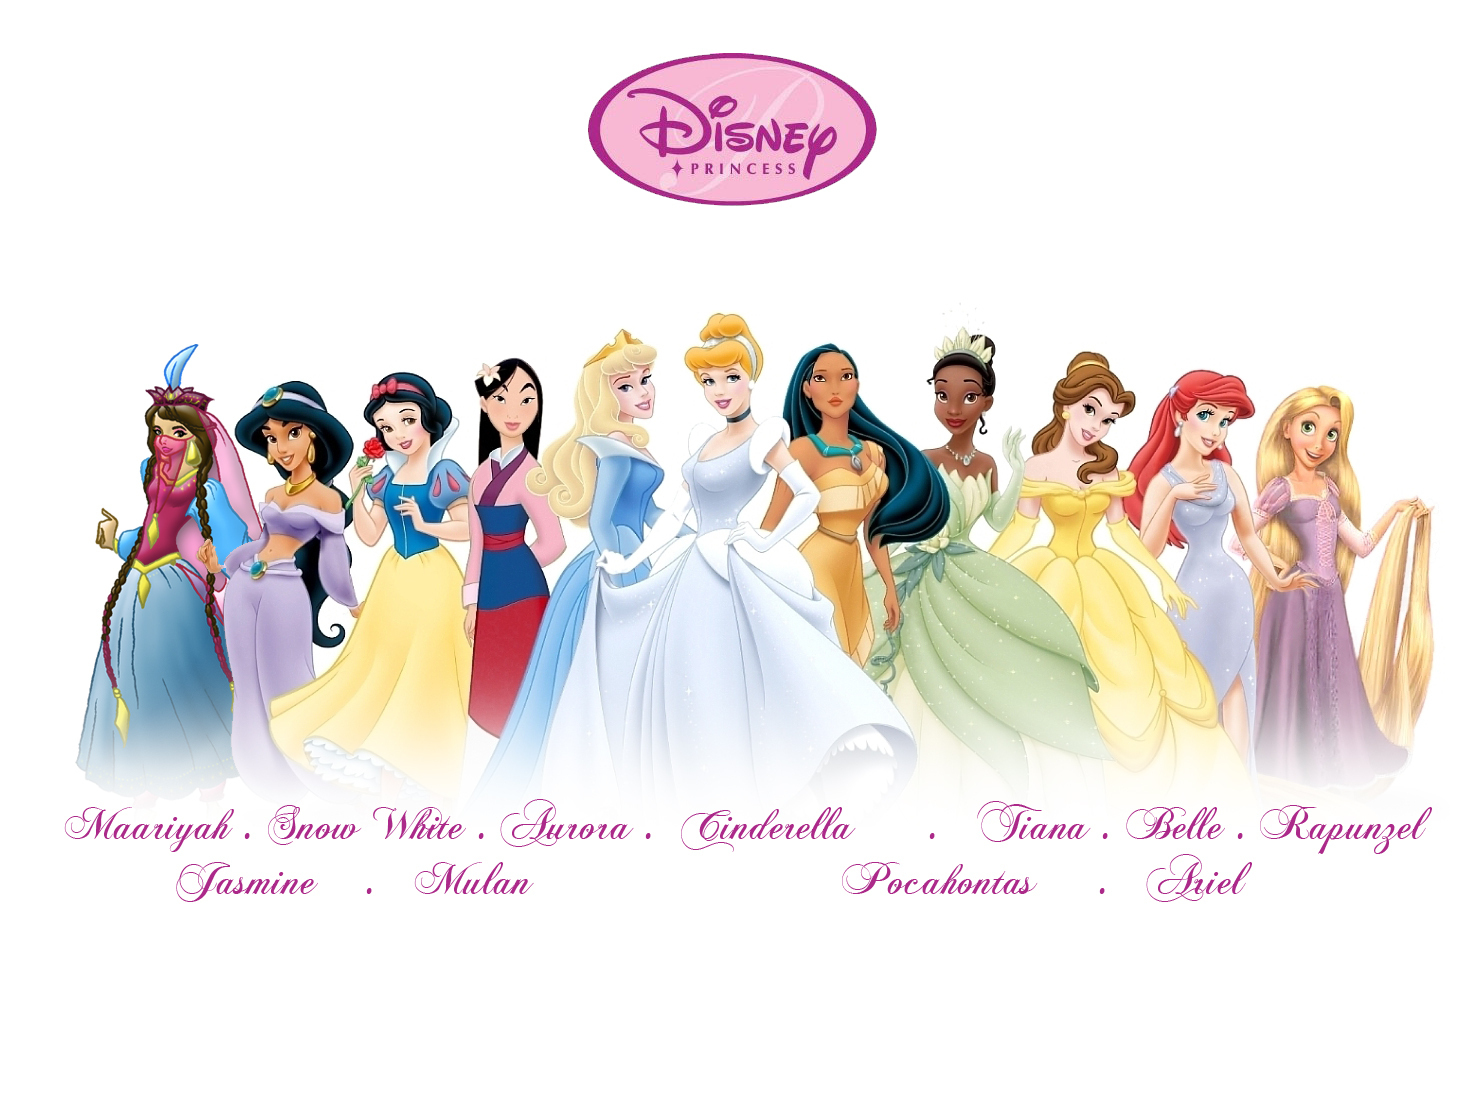 New Disney Princess Line Up